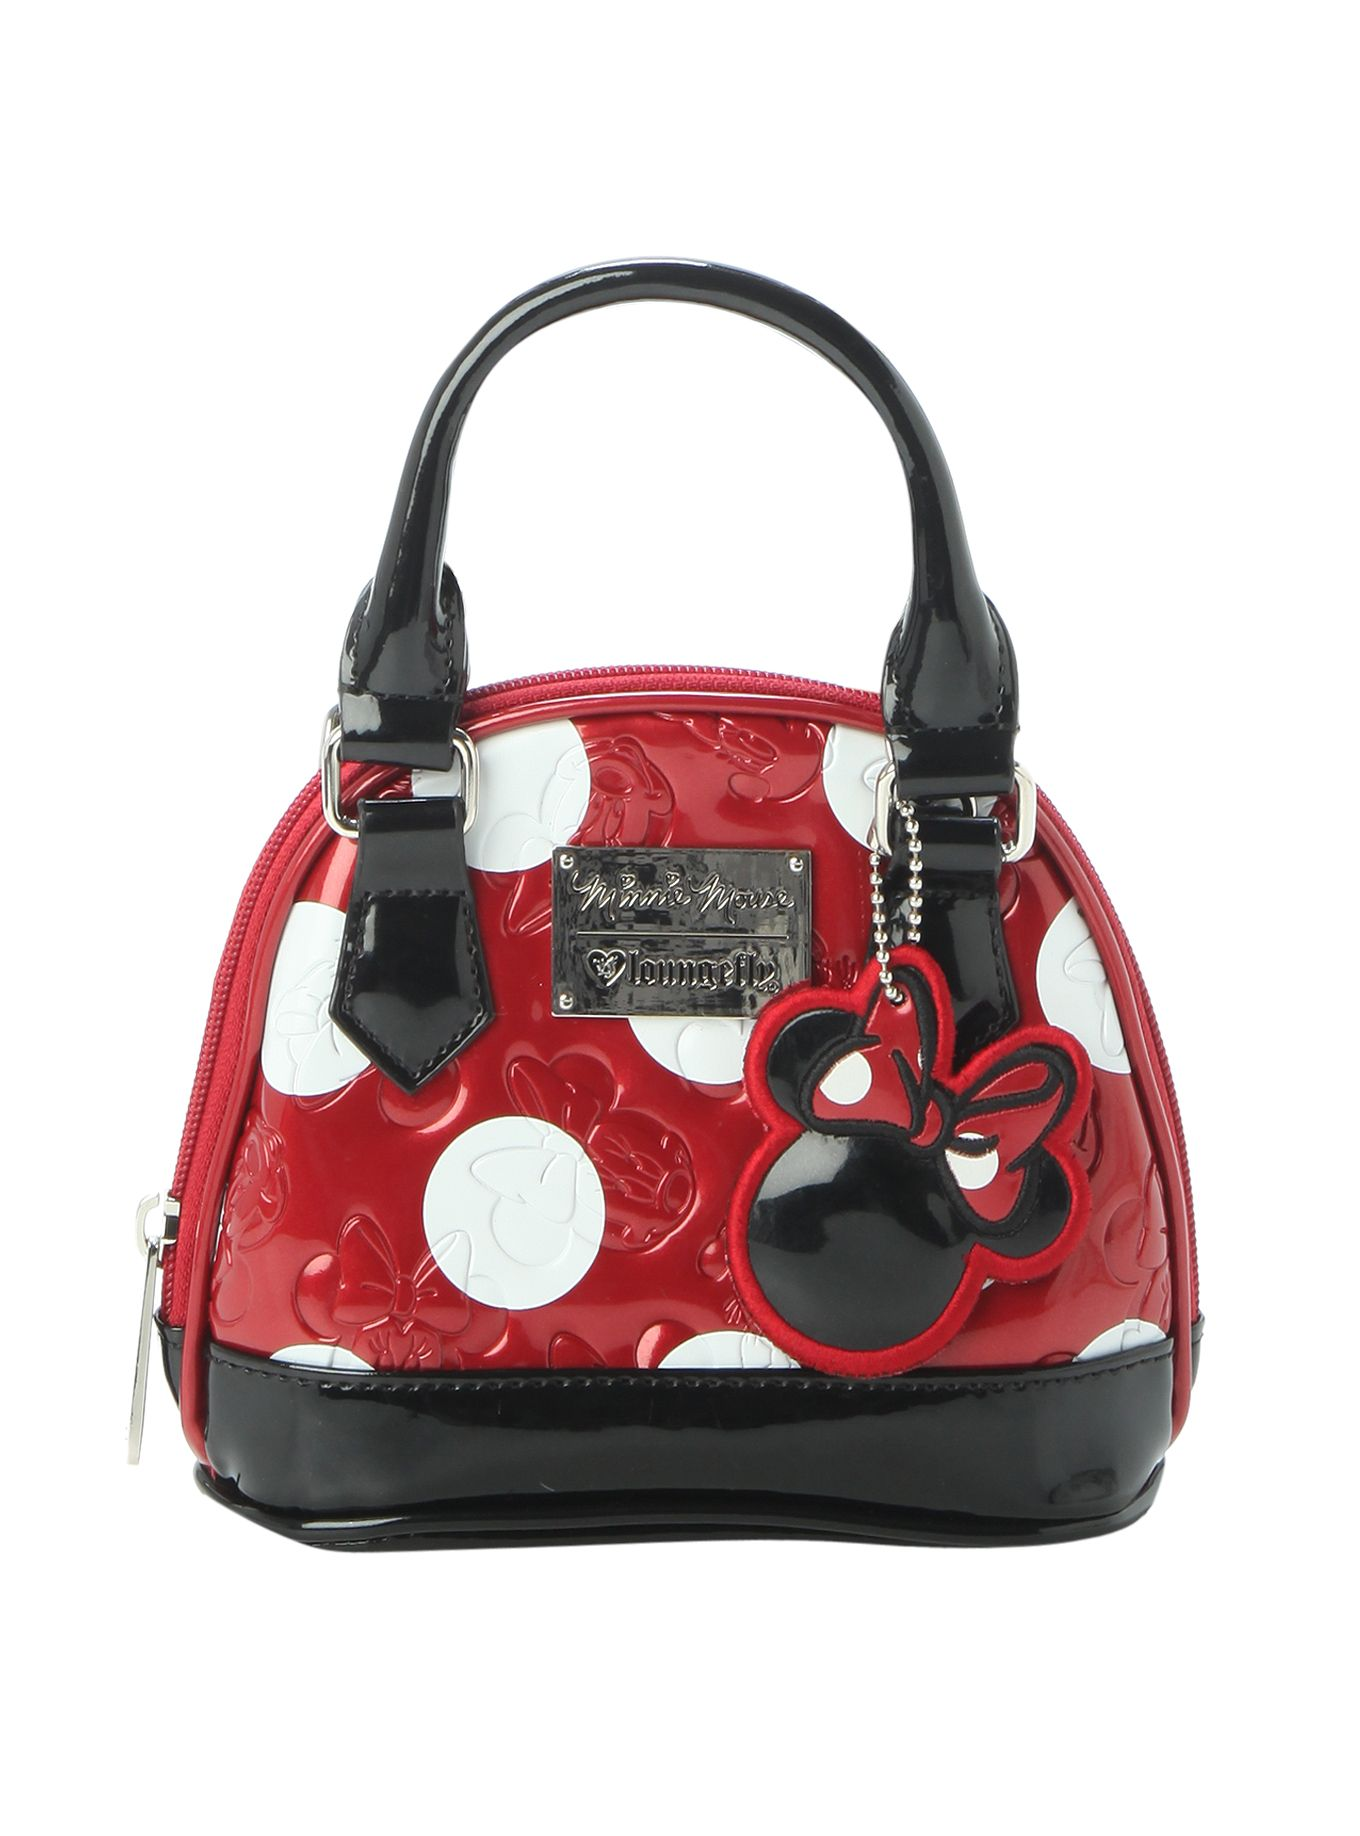 c2338fe7a5a5 Loungefly Disney Minnie Mouse Polka Dot Mini Dome Bag | Hot Topic ...